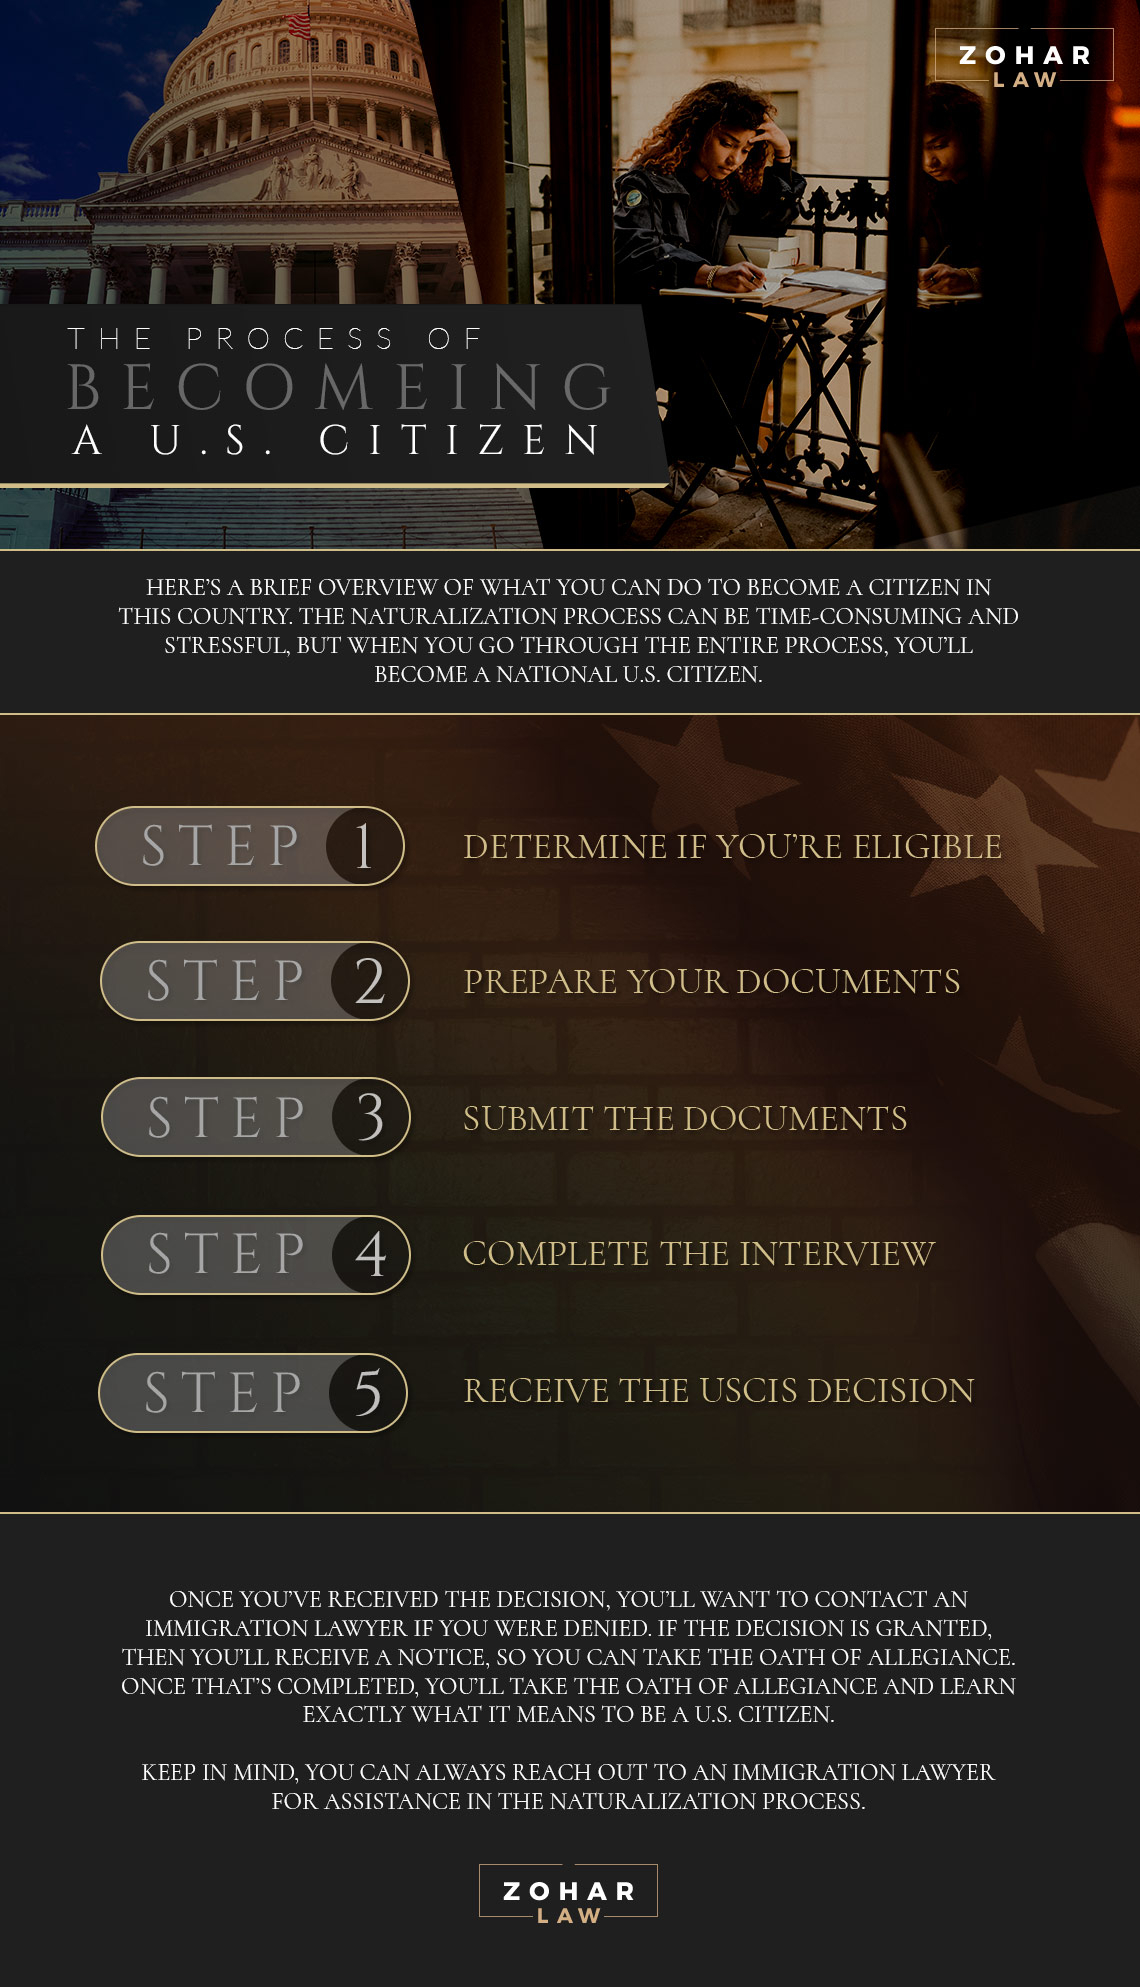 infographic-immigration-101-5b32a88a17699.jpg